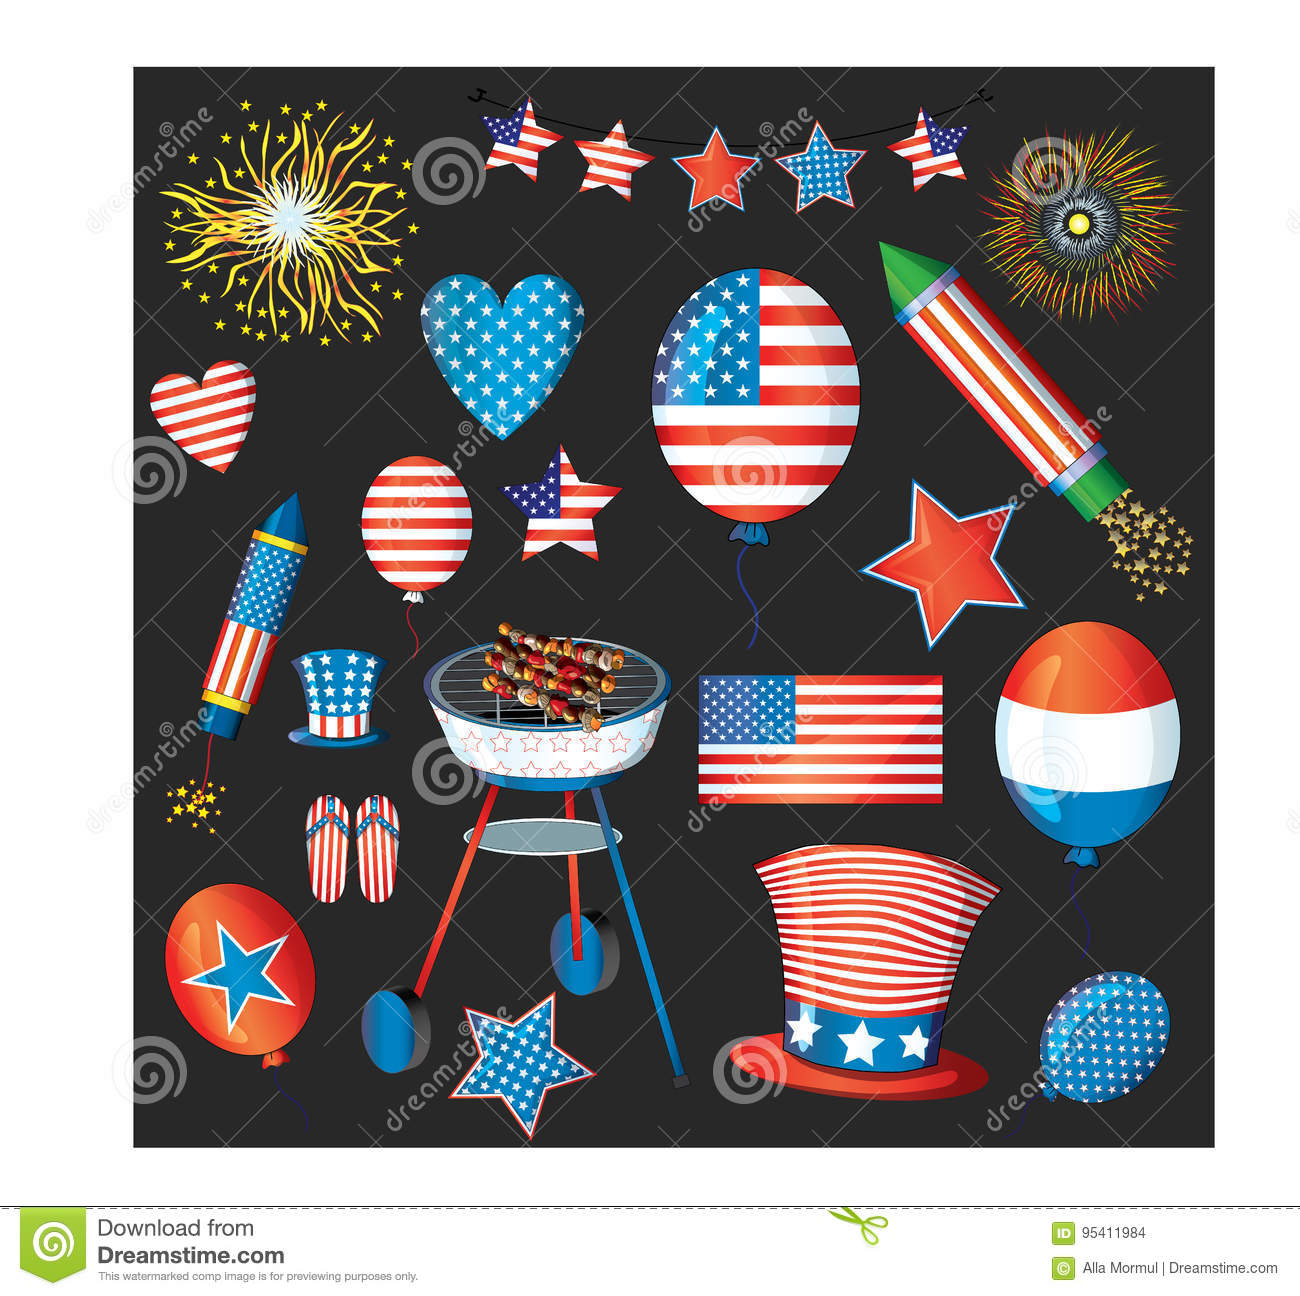 Independence day vector pack. Fourth of july fireworks. USA flag, cylinder hat, balloons, star, hearts, flip flop. AI.